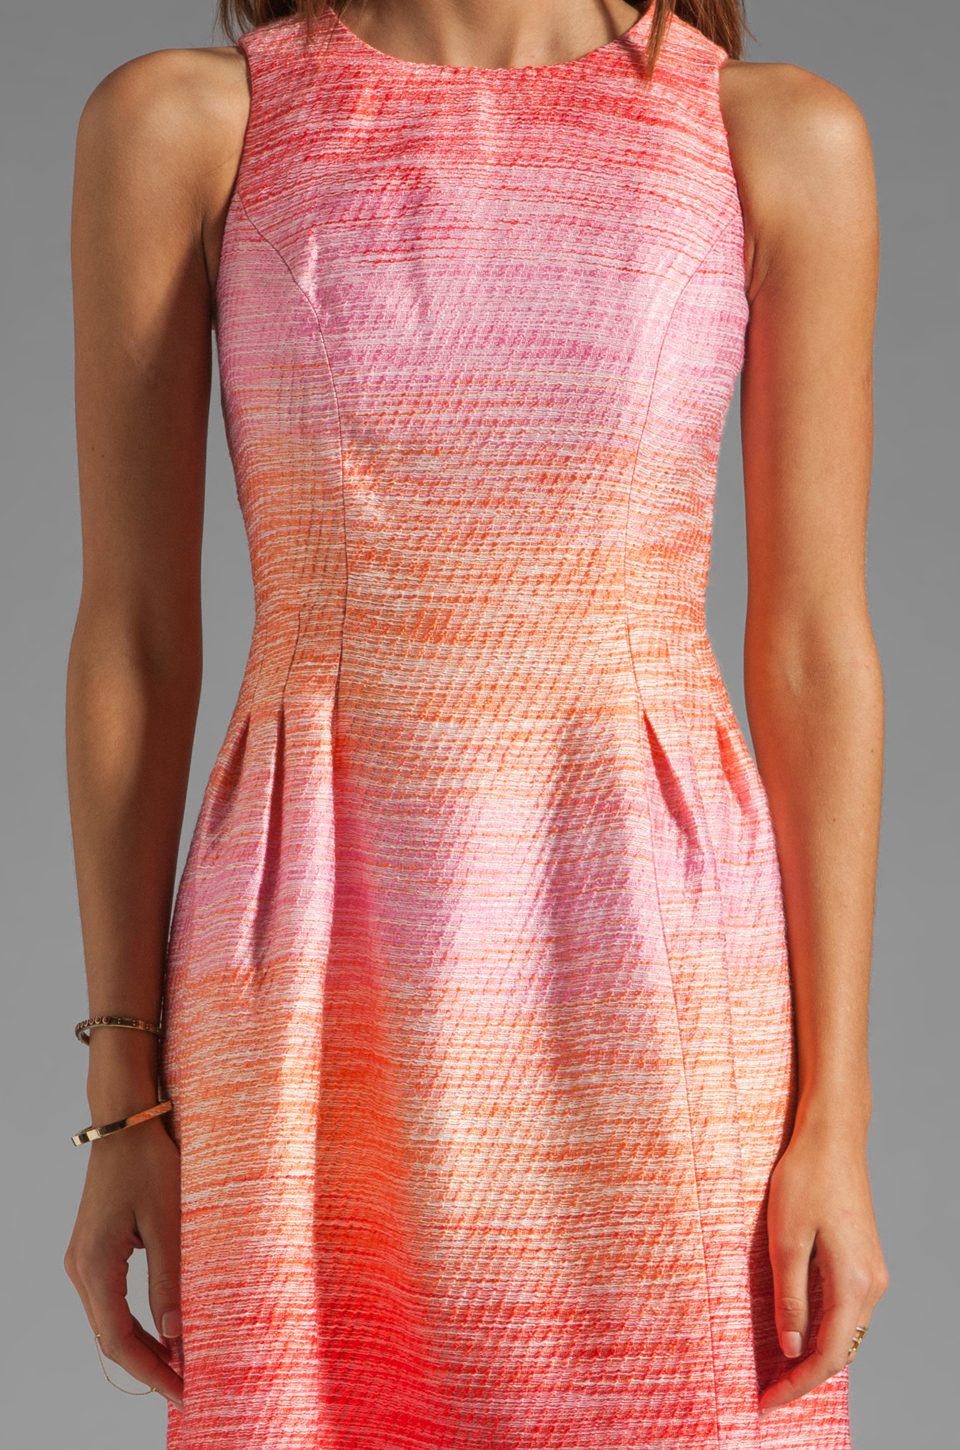 Shoshanna Julia Freya Dress in Peach Multi